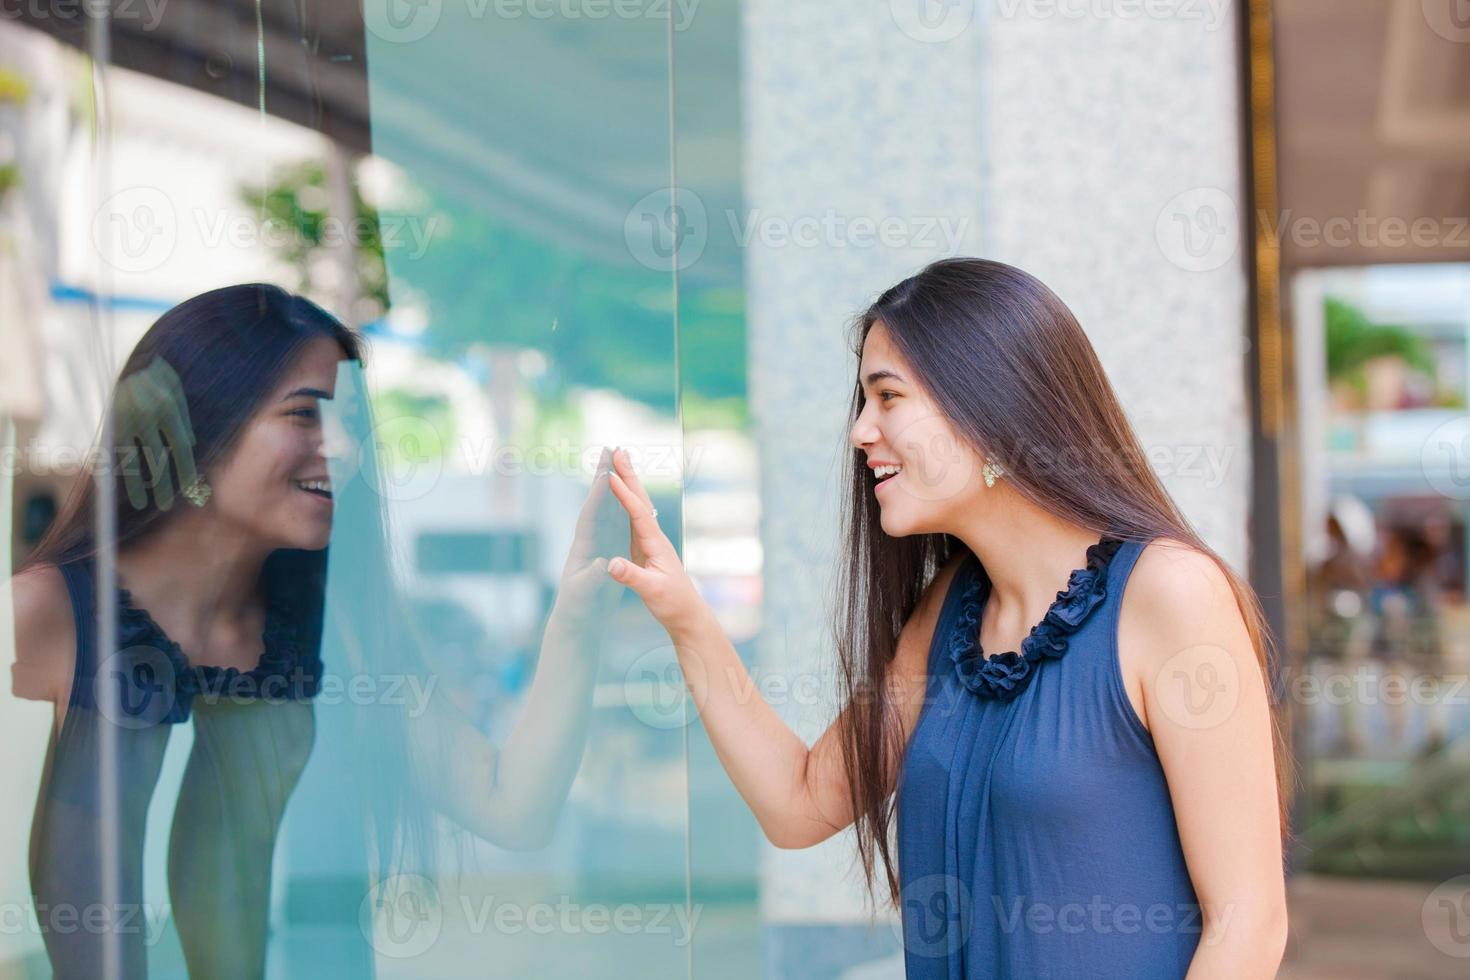 Biracial teen girl  window shopping in urban setting downtown photo